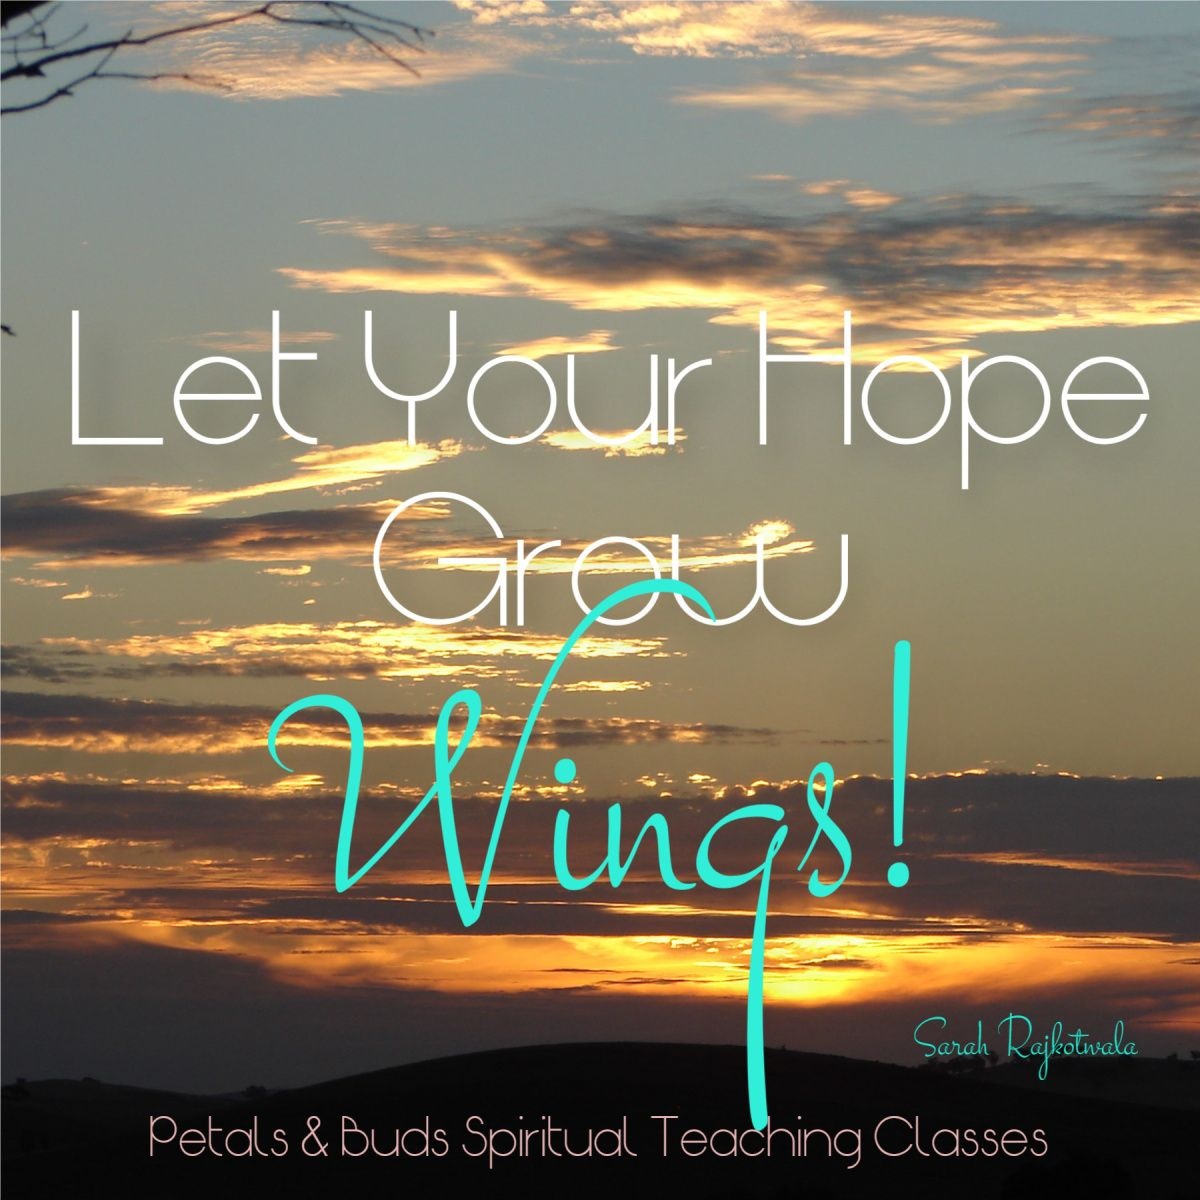 Let Your Hope Grow Wings